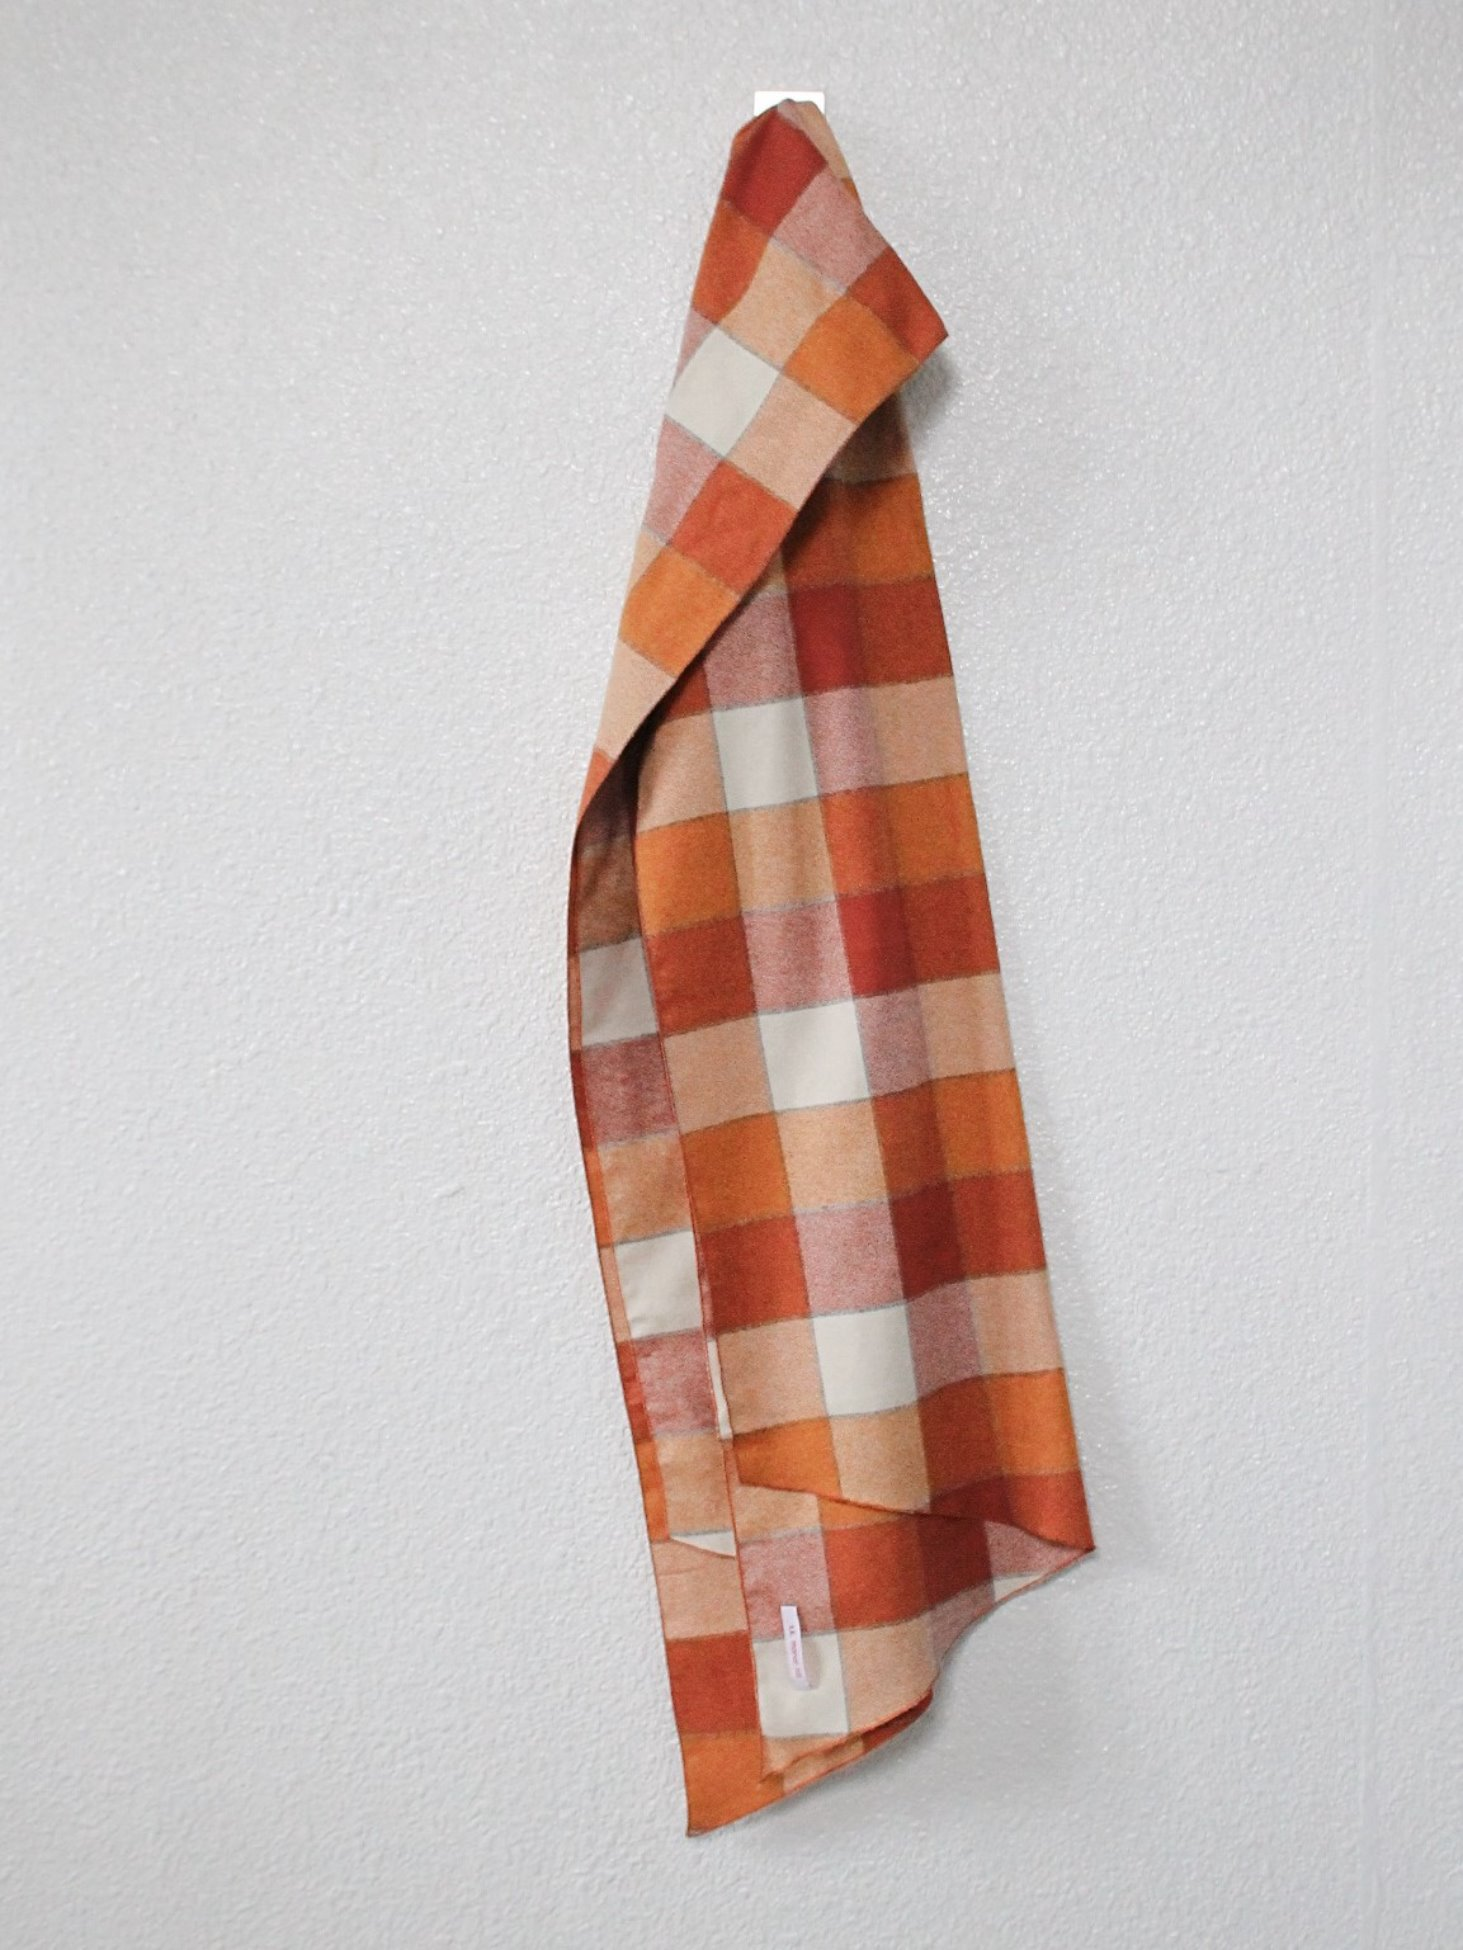 [s.k. manor hill] Long Scarf - Orange Plaid Flannel